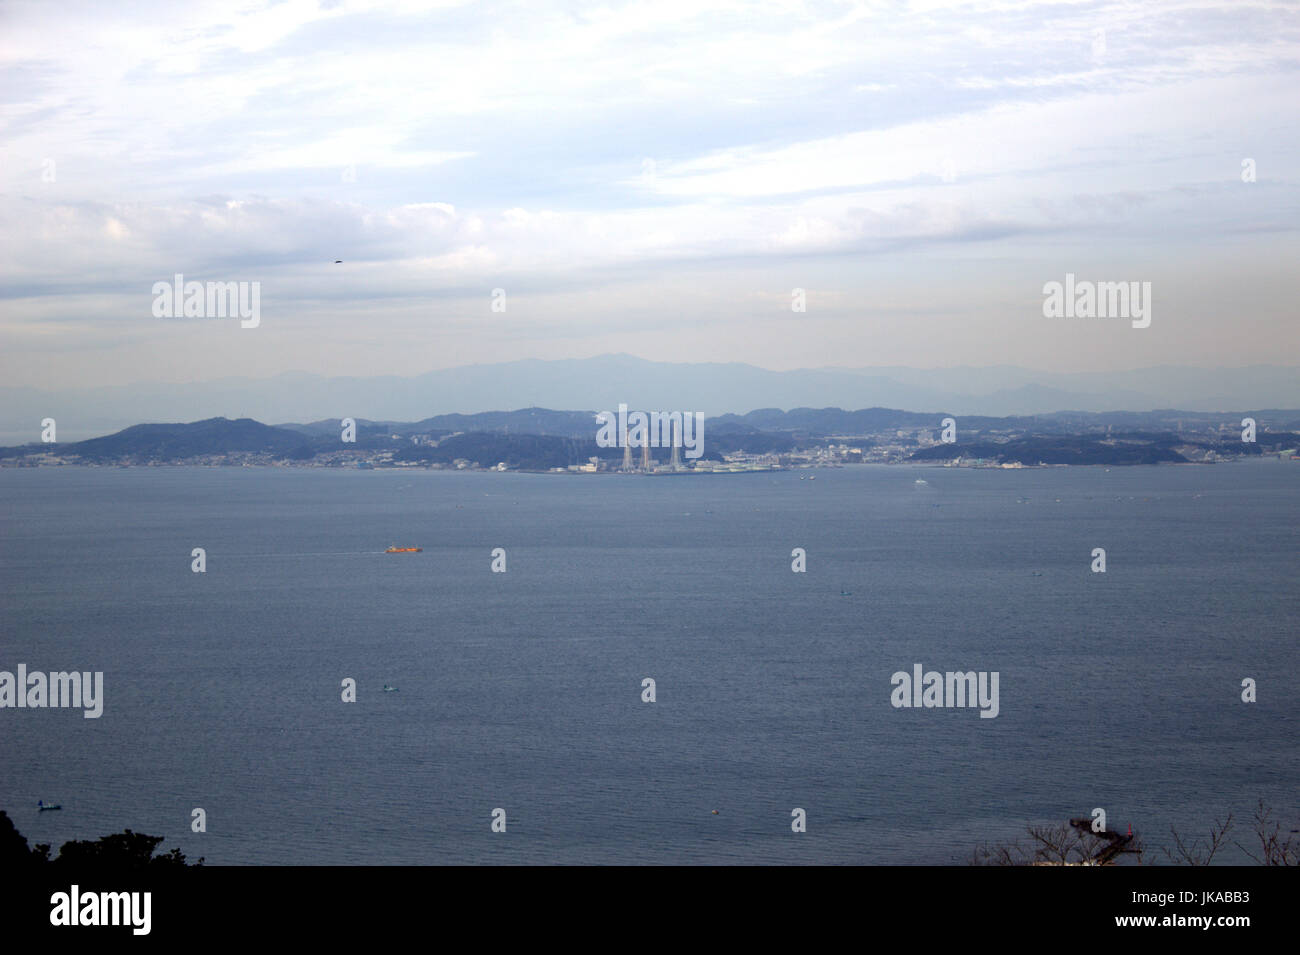 Looking across Tokyo Bay toward Kanagawa Prefecture from the top of Mt. Nokogiri - Stock Image